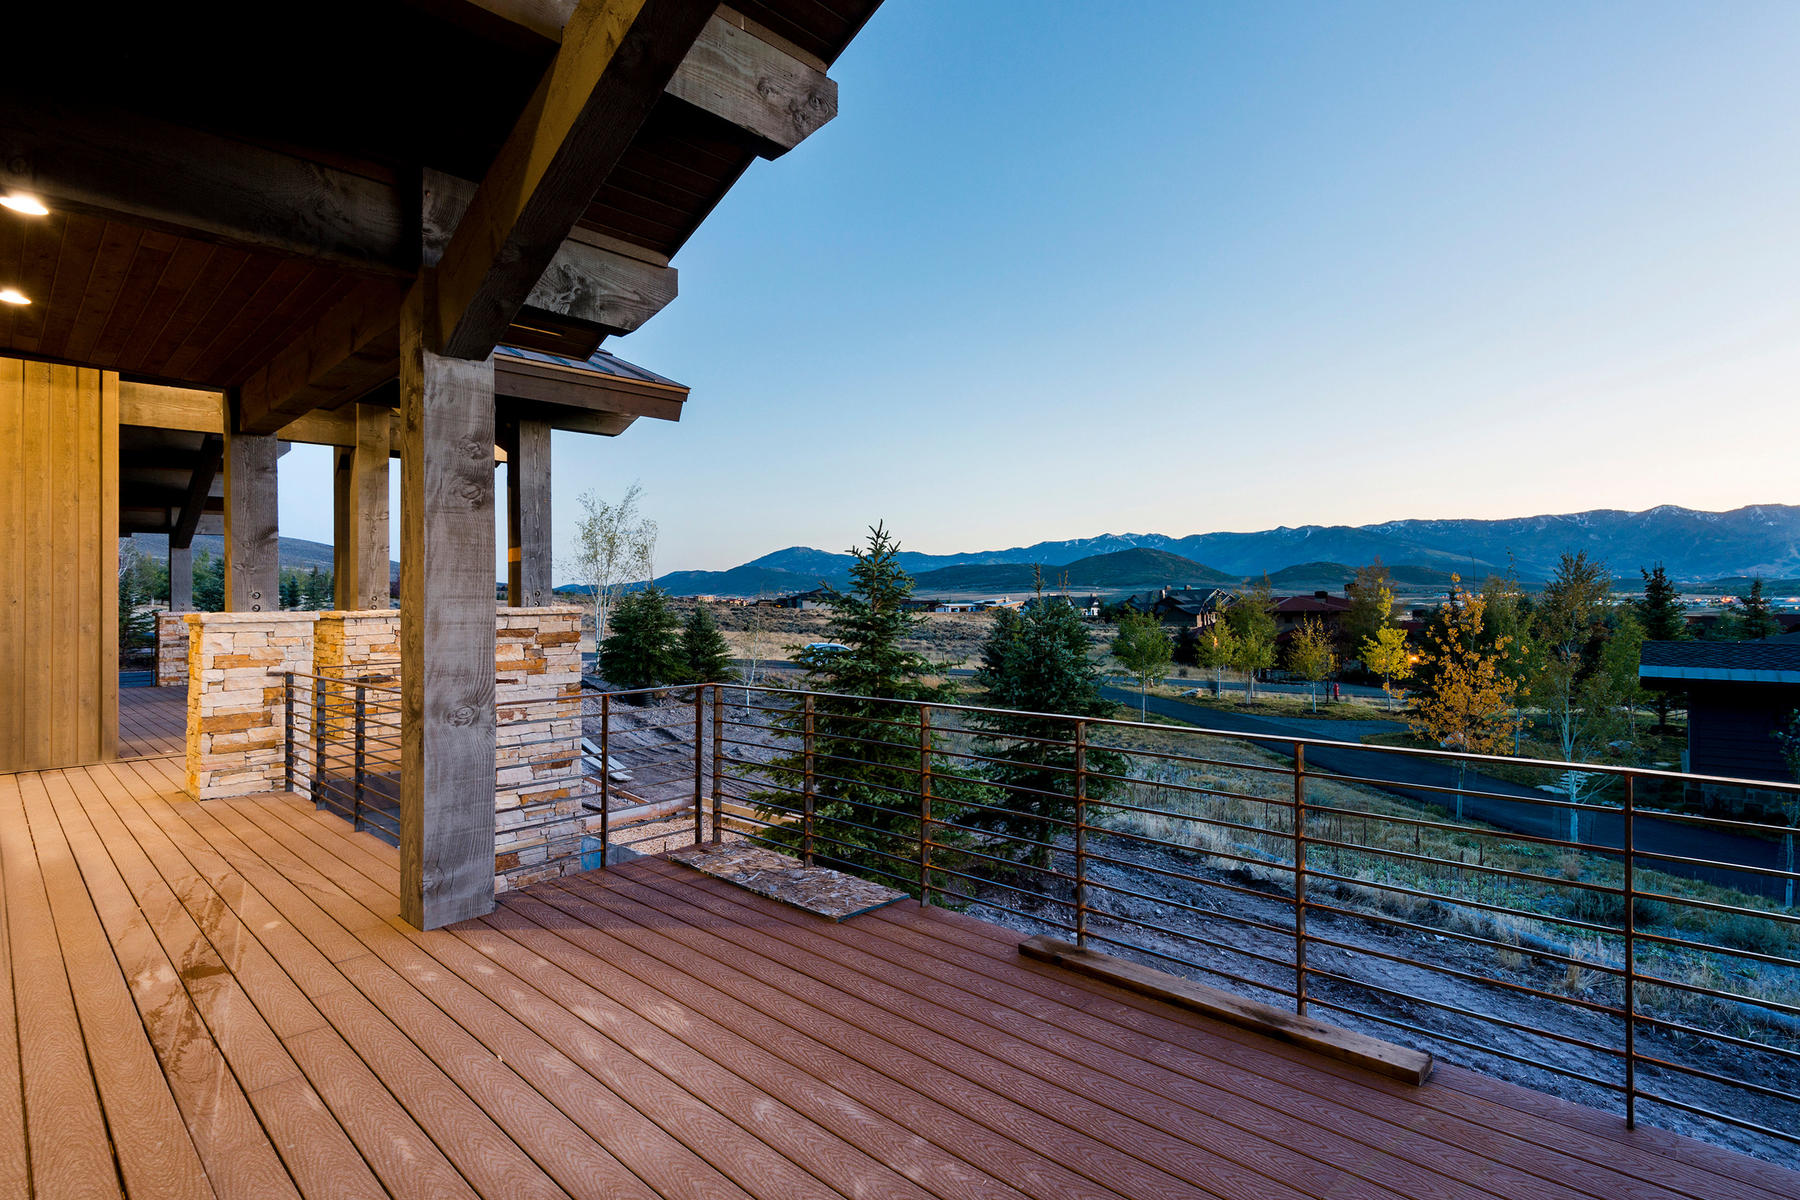 Single Family Home for Sale at Mountain Contemporary Perfection in Promontory! 1956 Saddlehorn Dr, Park City, Utah, 84098 United States